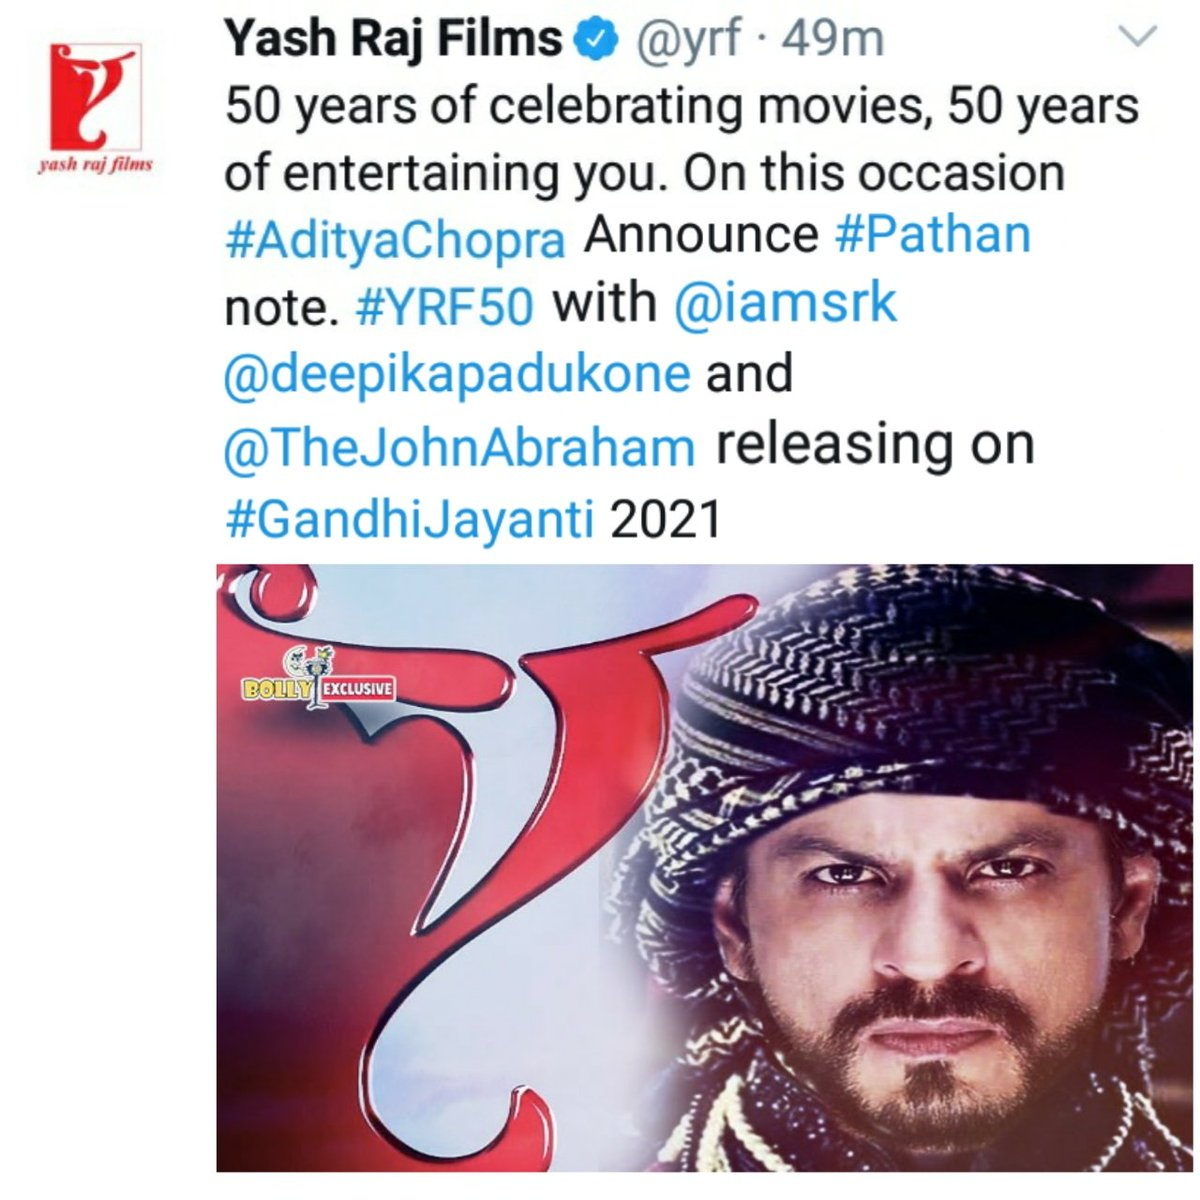 #YRF Announce His next film with mega Star @iamsrk @TheJohnAbraham And @deepikapadukone Full packed with Action Shoot in Different territory Releasing on #GandhiJayanti #YRF50 #YRFProject50 #Pathan #ShahRukhKhan https://t.co/ce9sgBsl9d